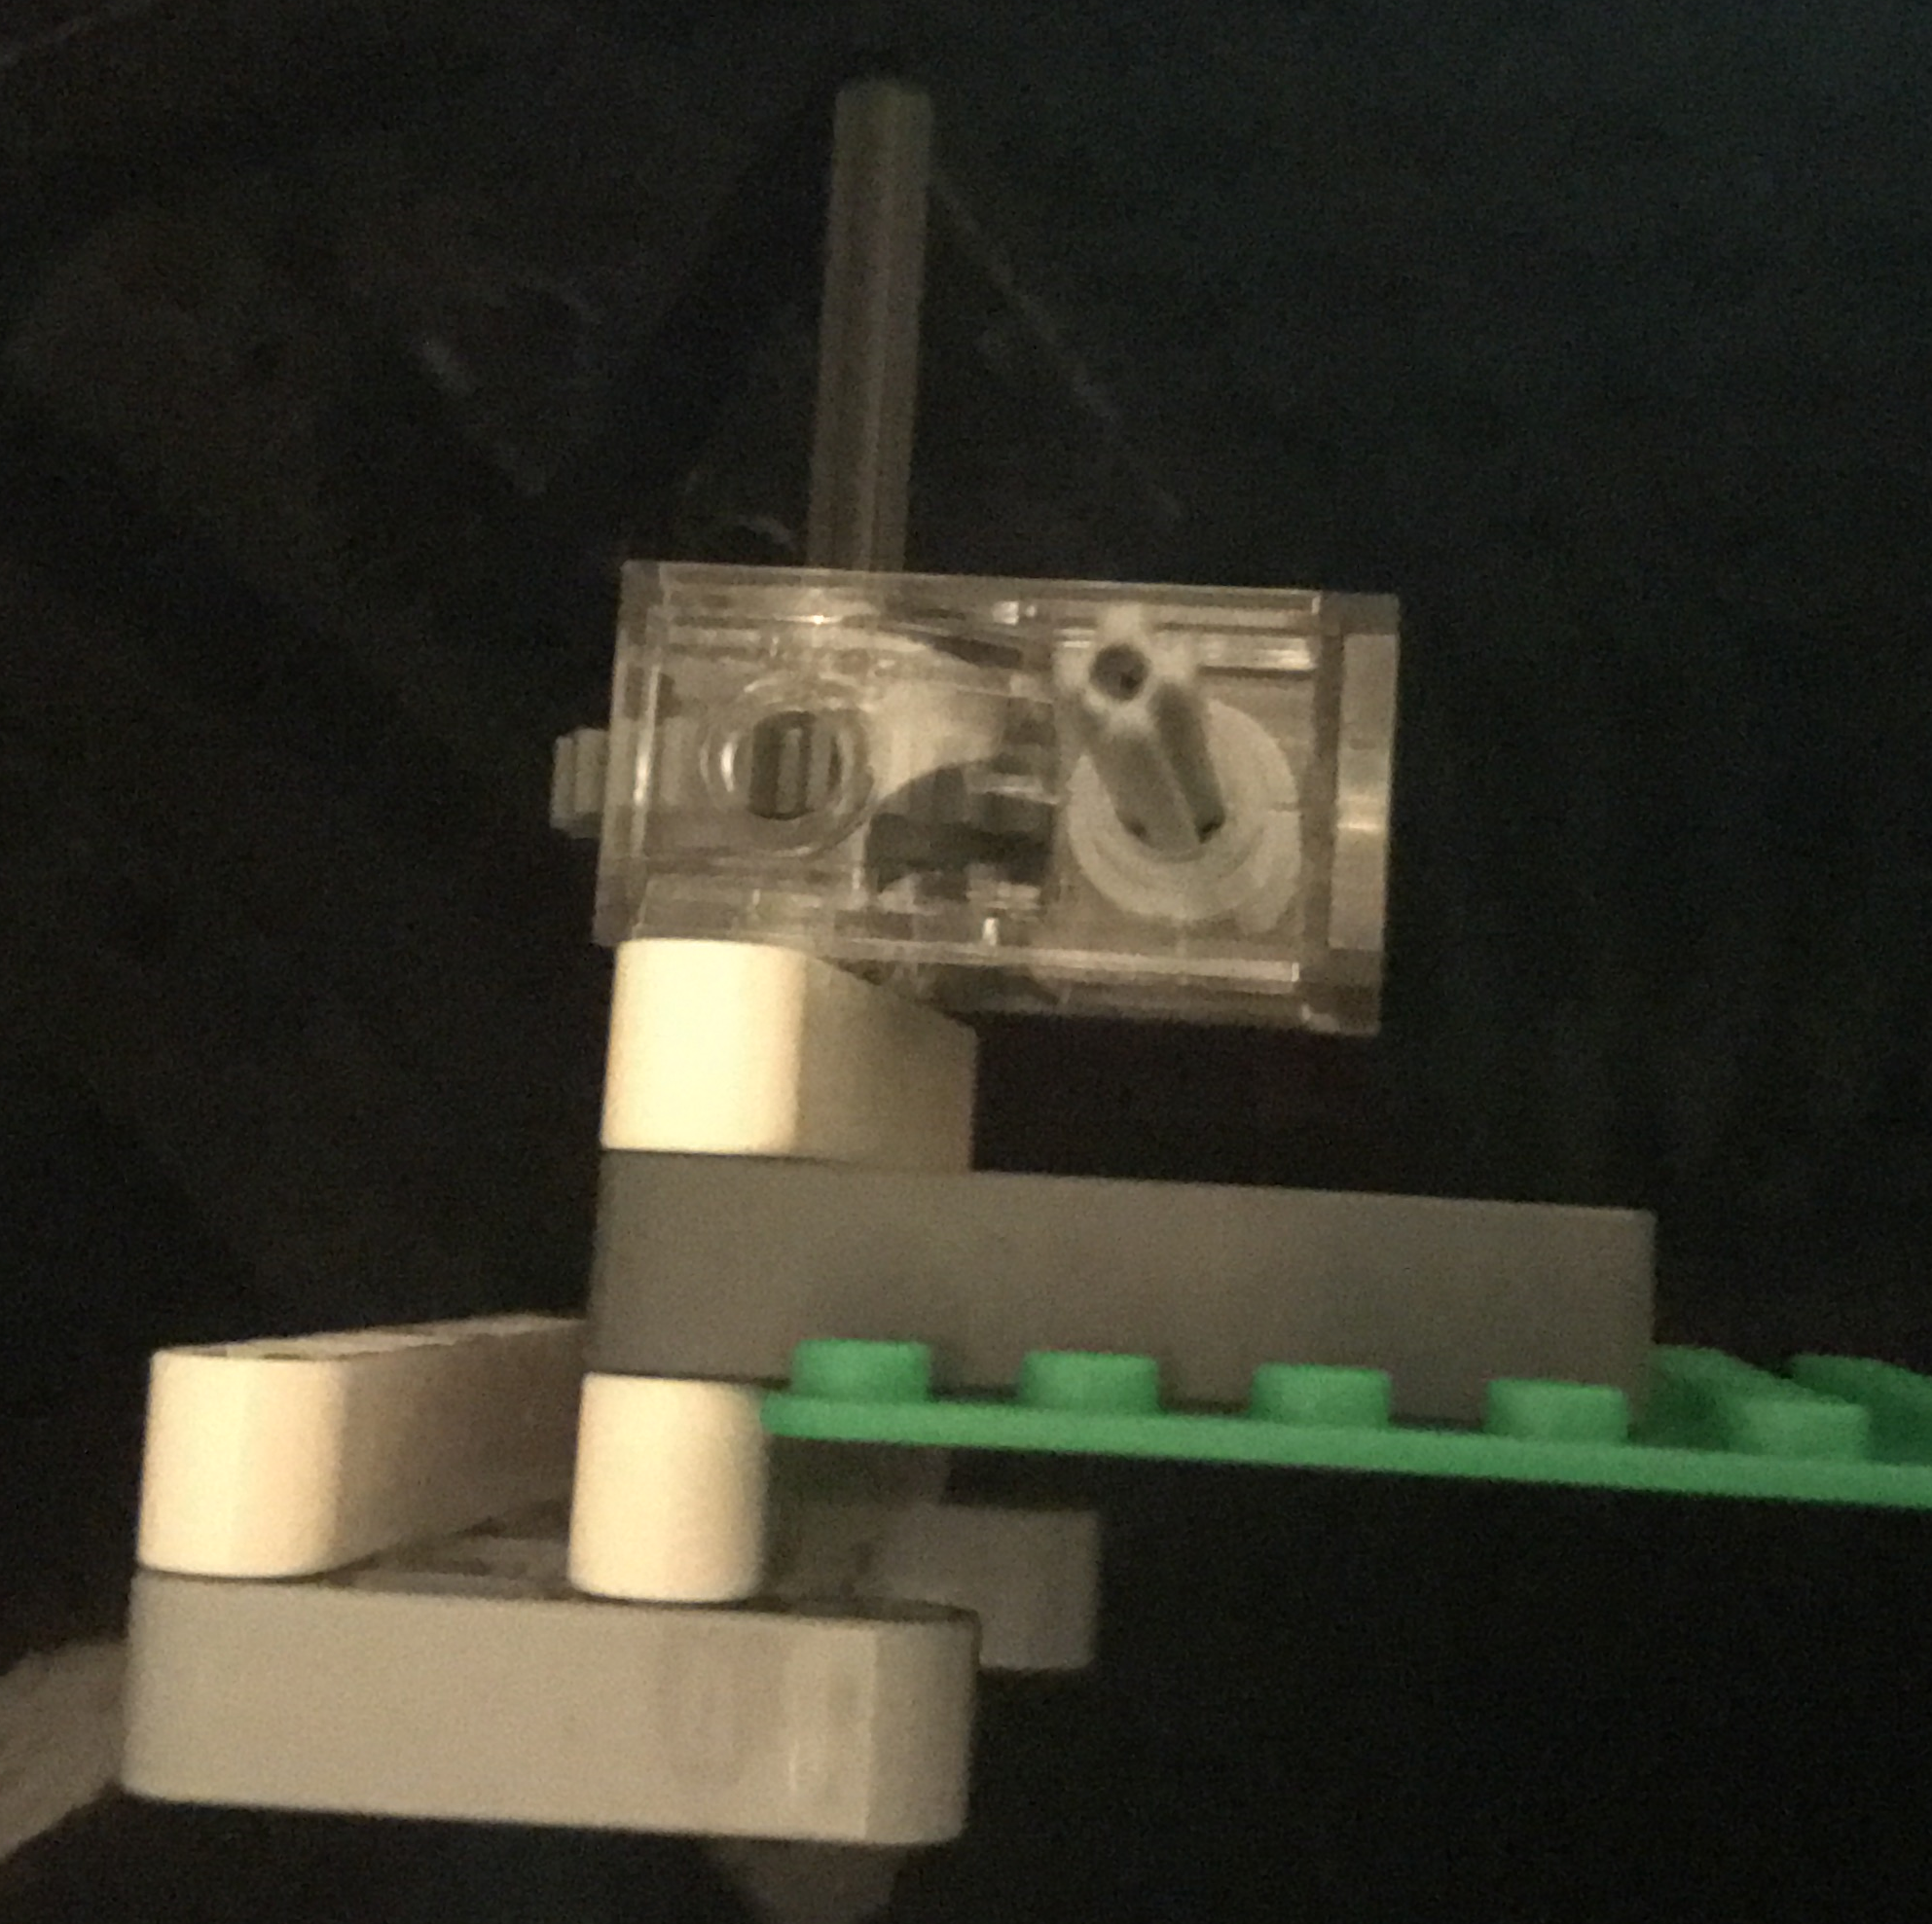 Hack a Dual Axis Gear Motor for Lego | Details | Hackaday io